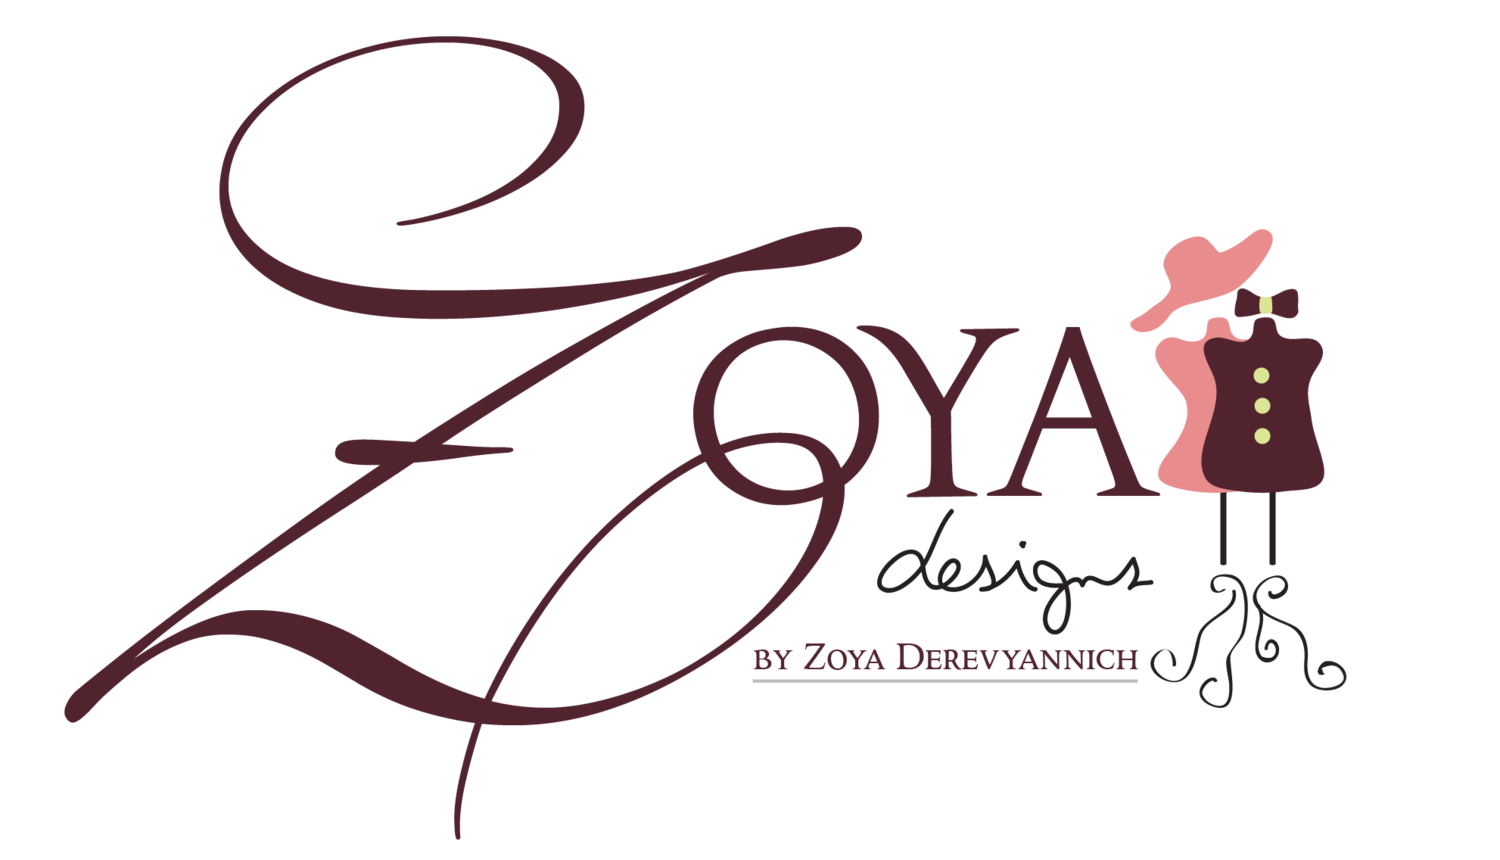 Zoya clipart png free library 1267 Broadway Somerville MA Boston\'s Fashion Boutique 617 ... png free library